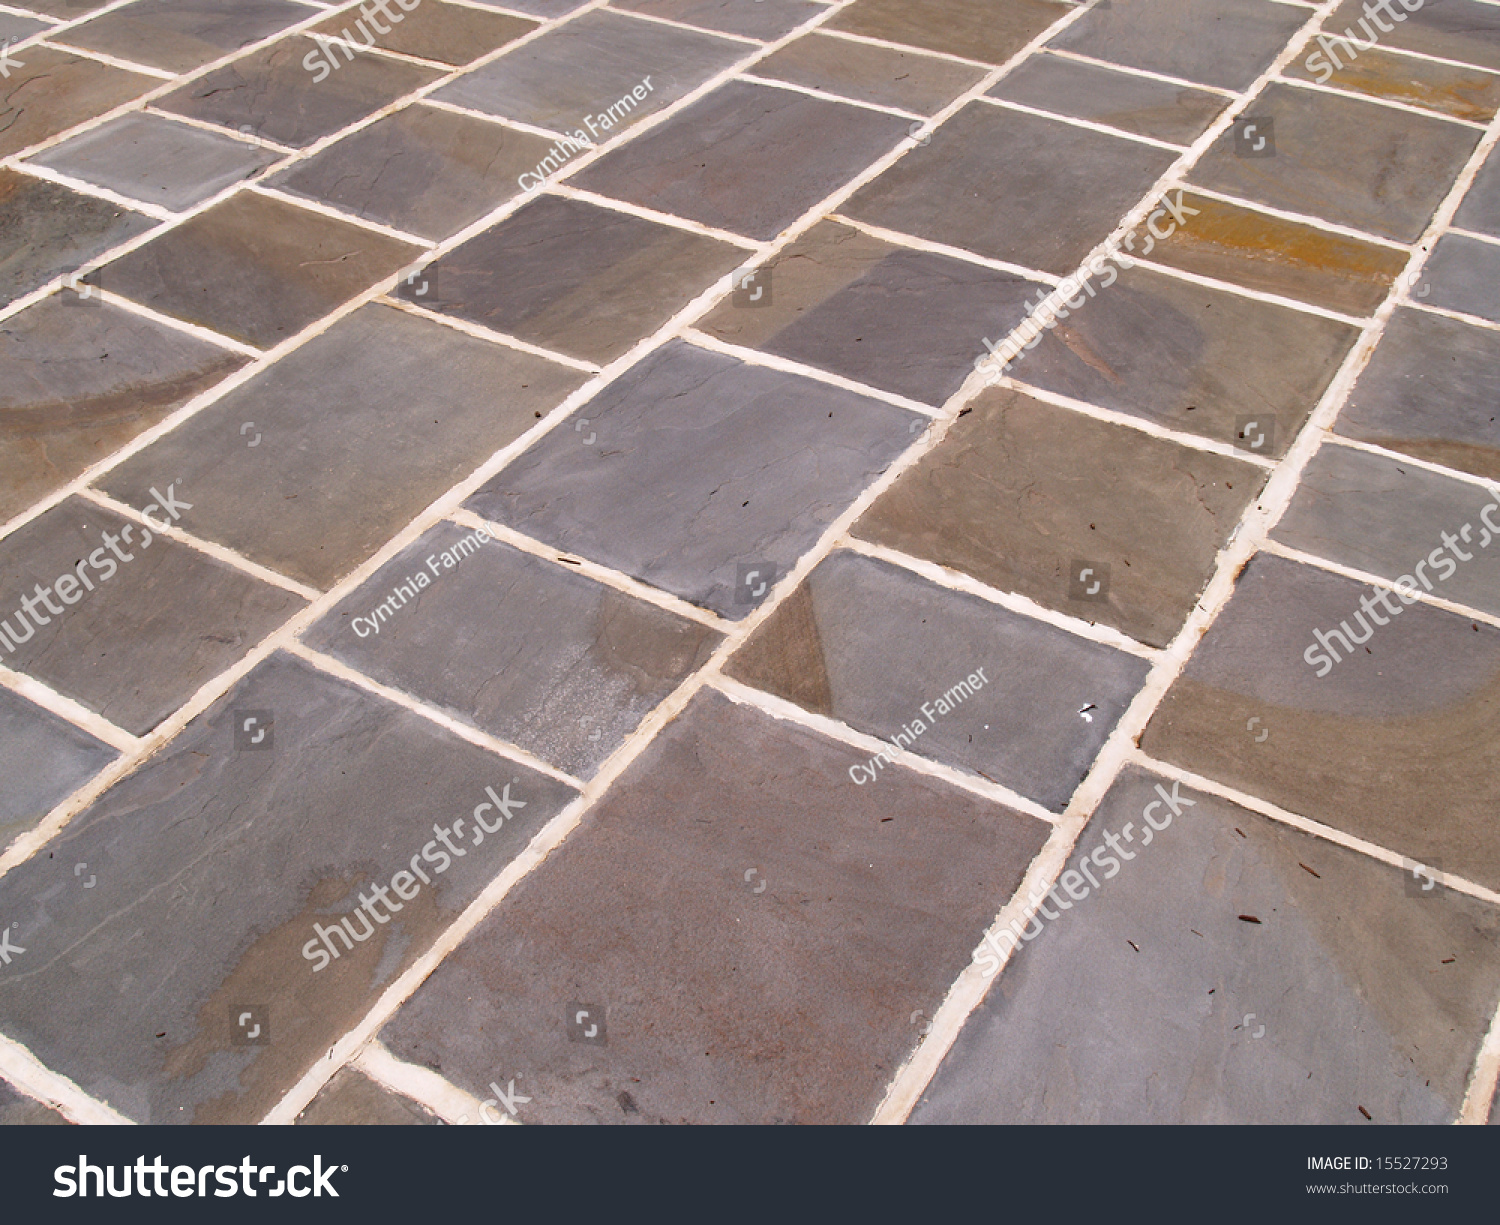 abstract view of an outdoor slate tile patio stock photo 15527293